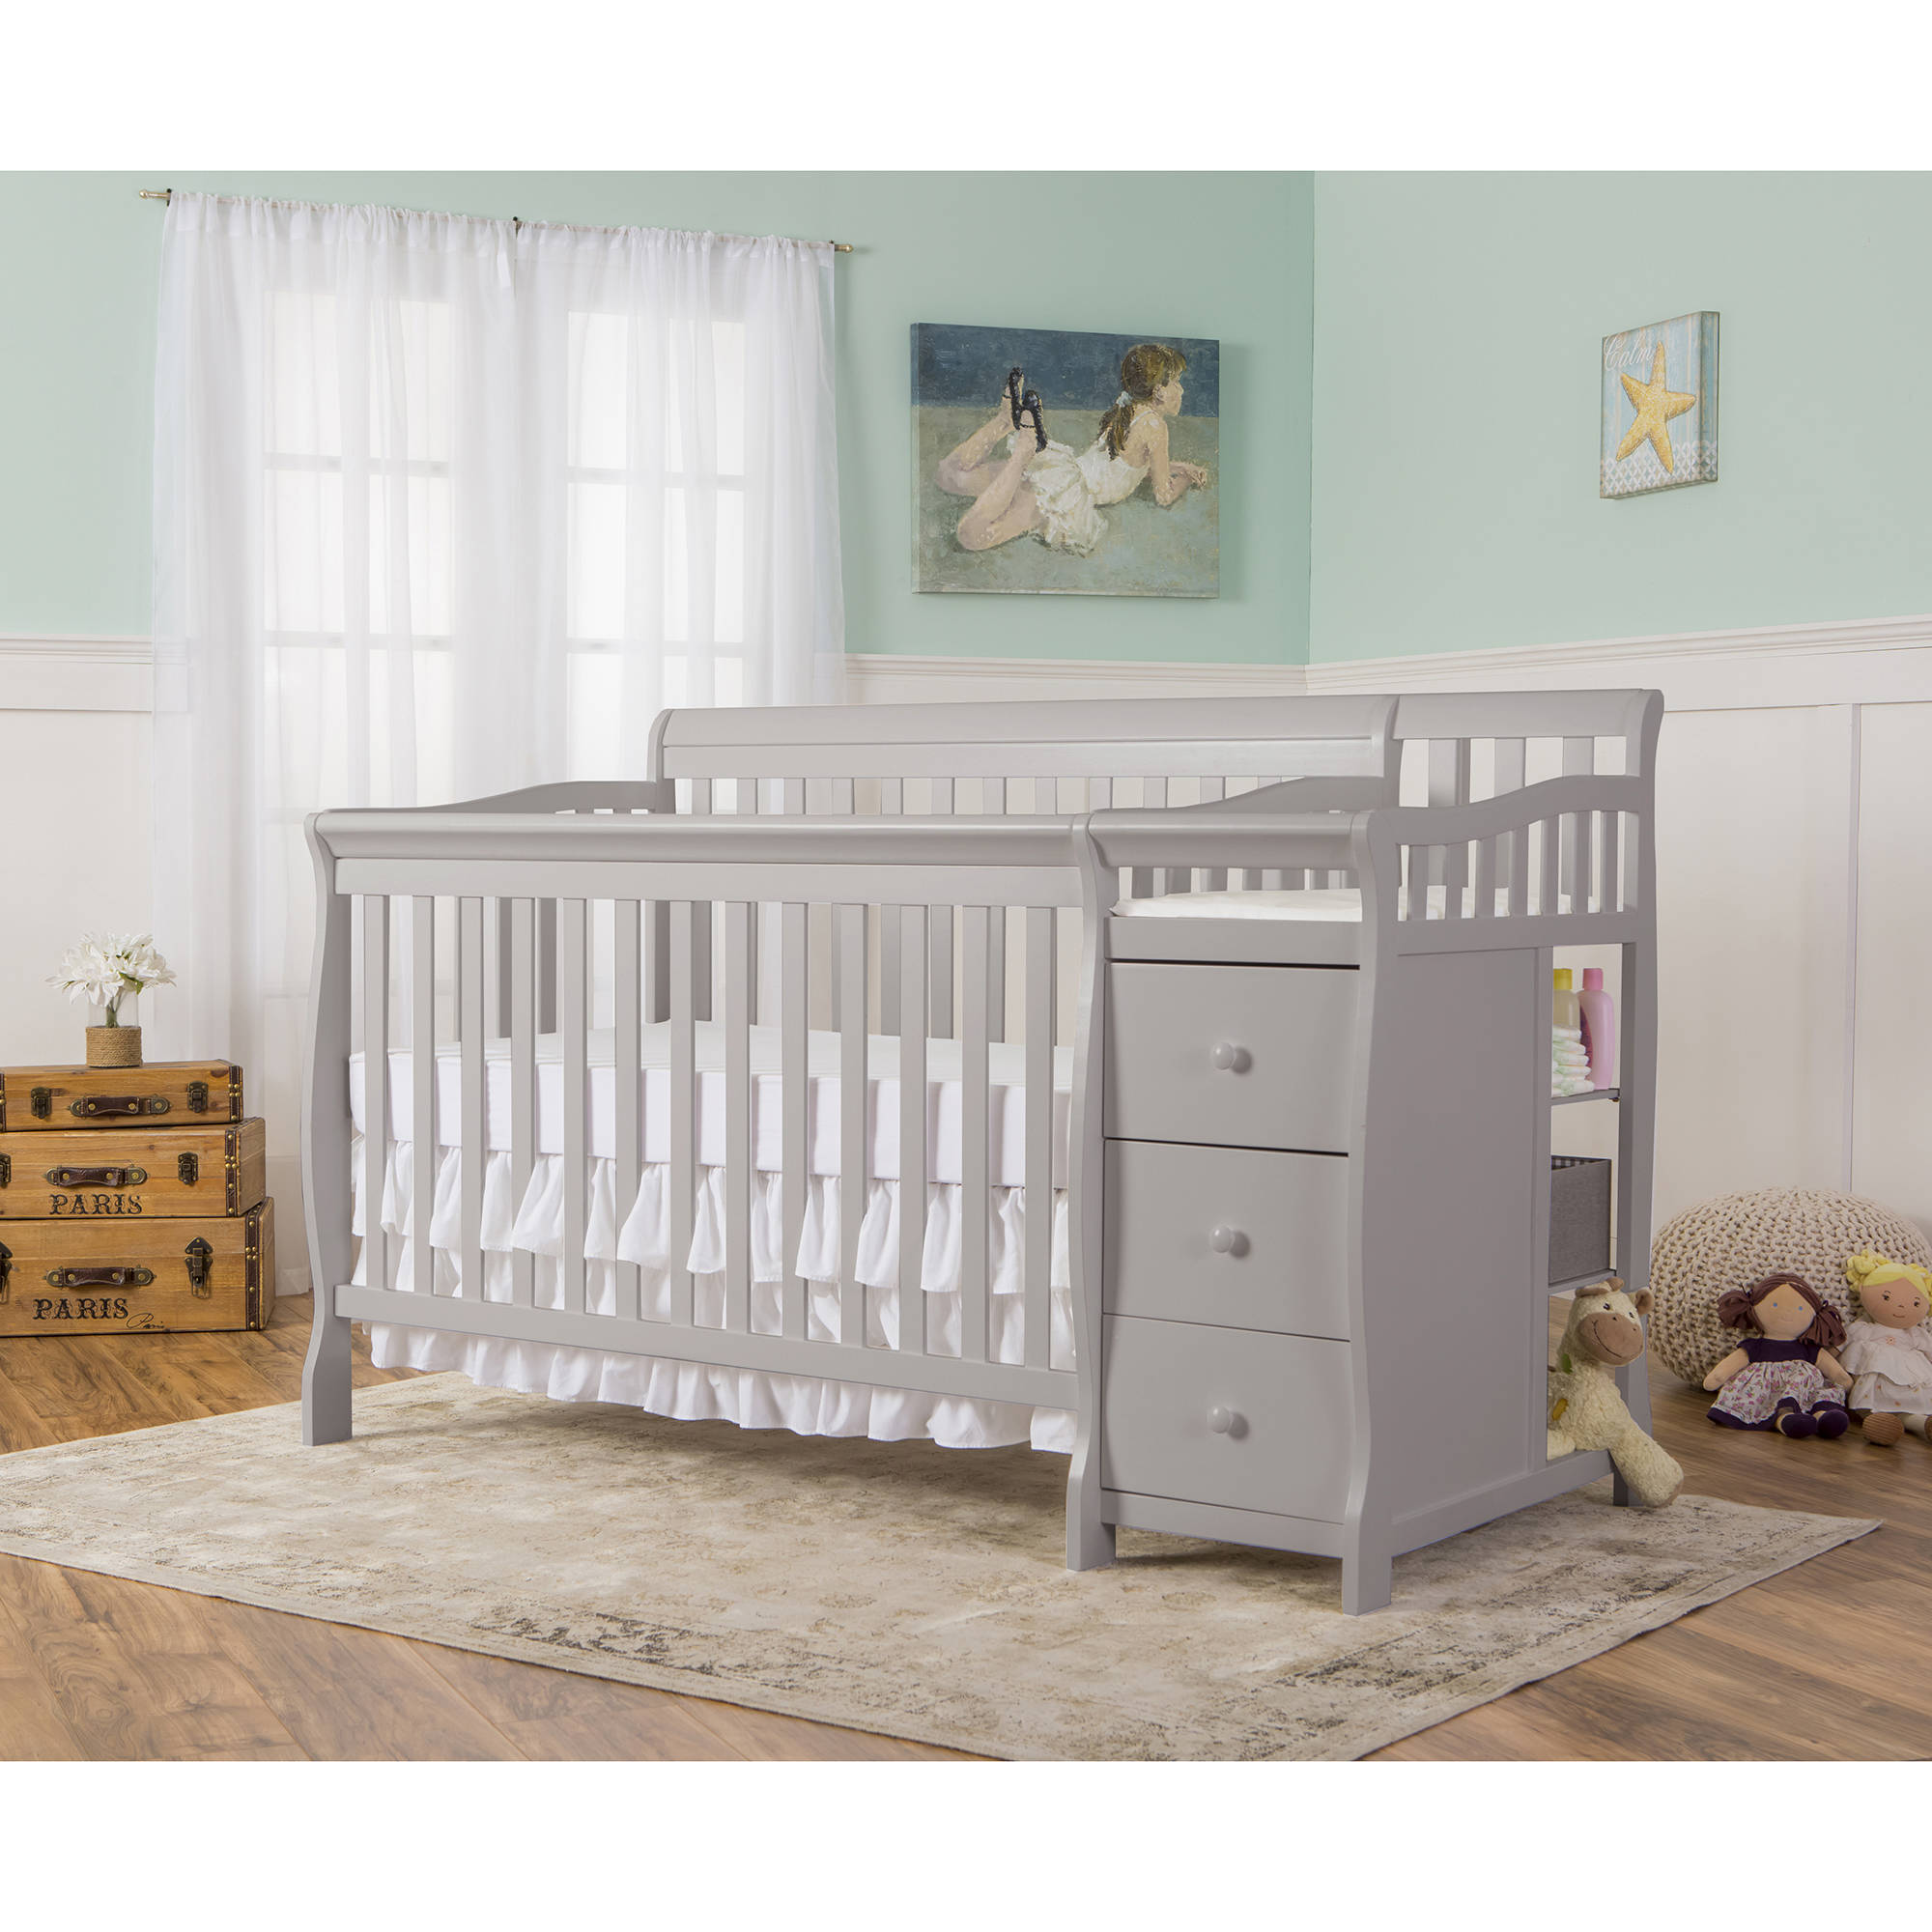 Dream On Me Brody 5-in-1 Crib & Changer Combo Pearl Gray Box 1 of 2 by Dream On Me